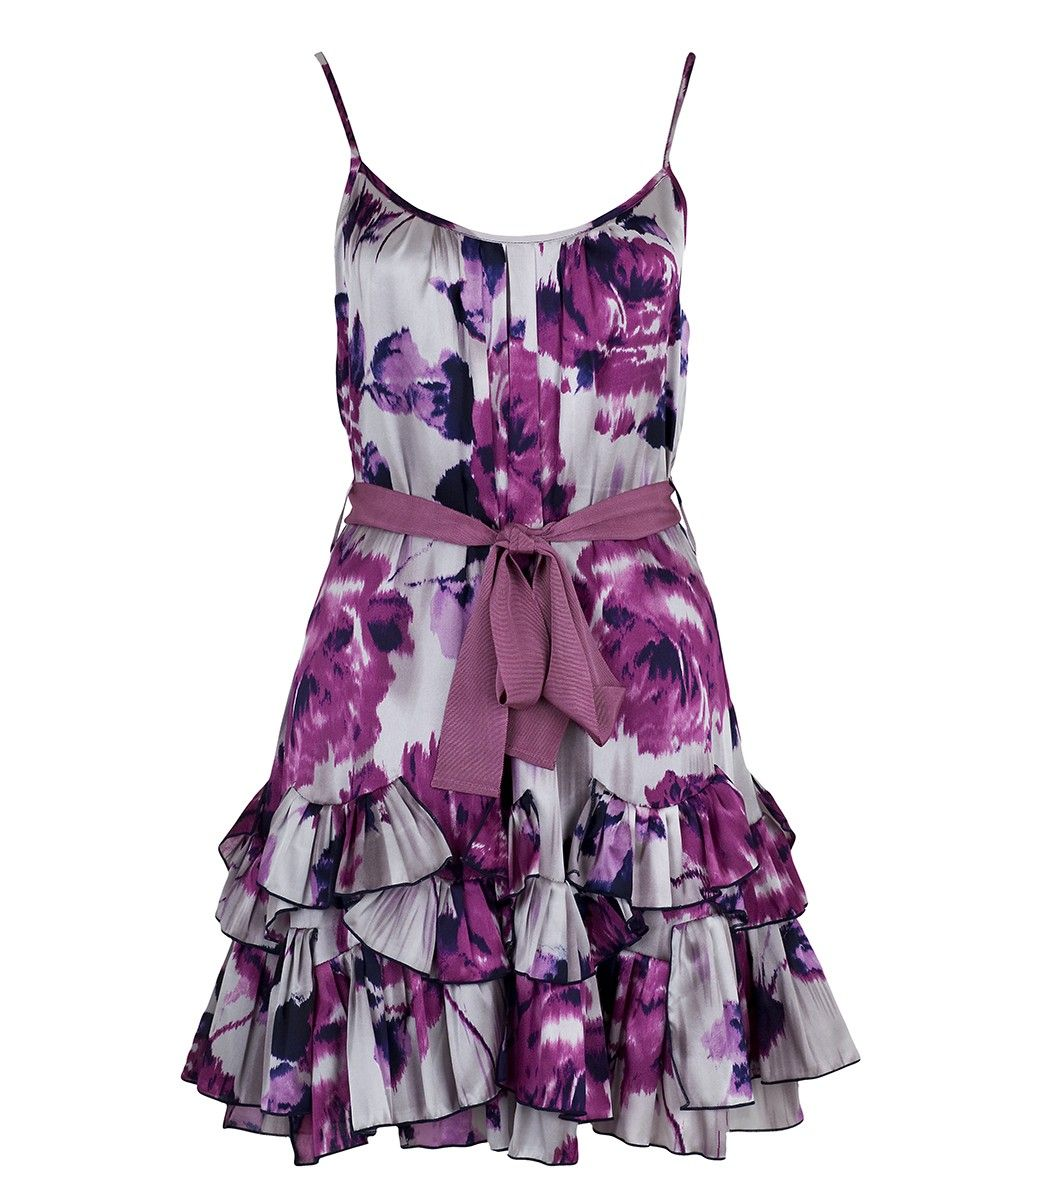 Alanah Hill frock | OUTFIT | Pinterest